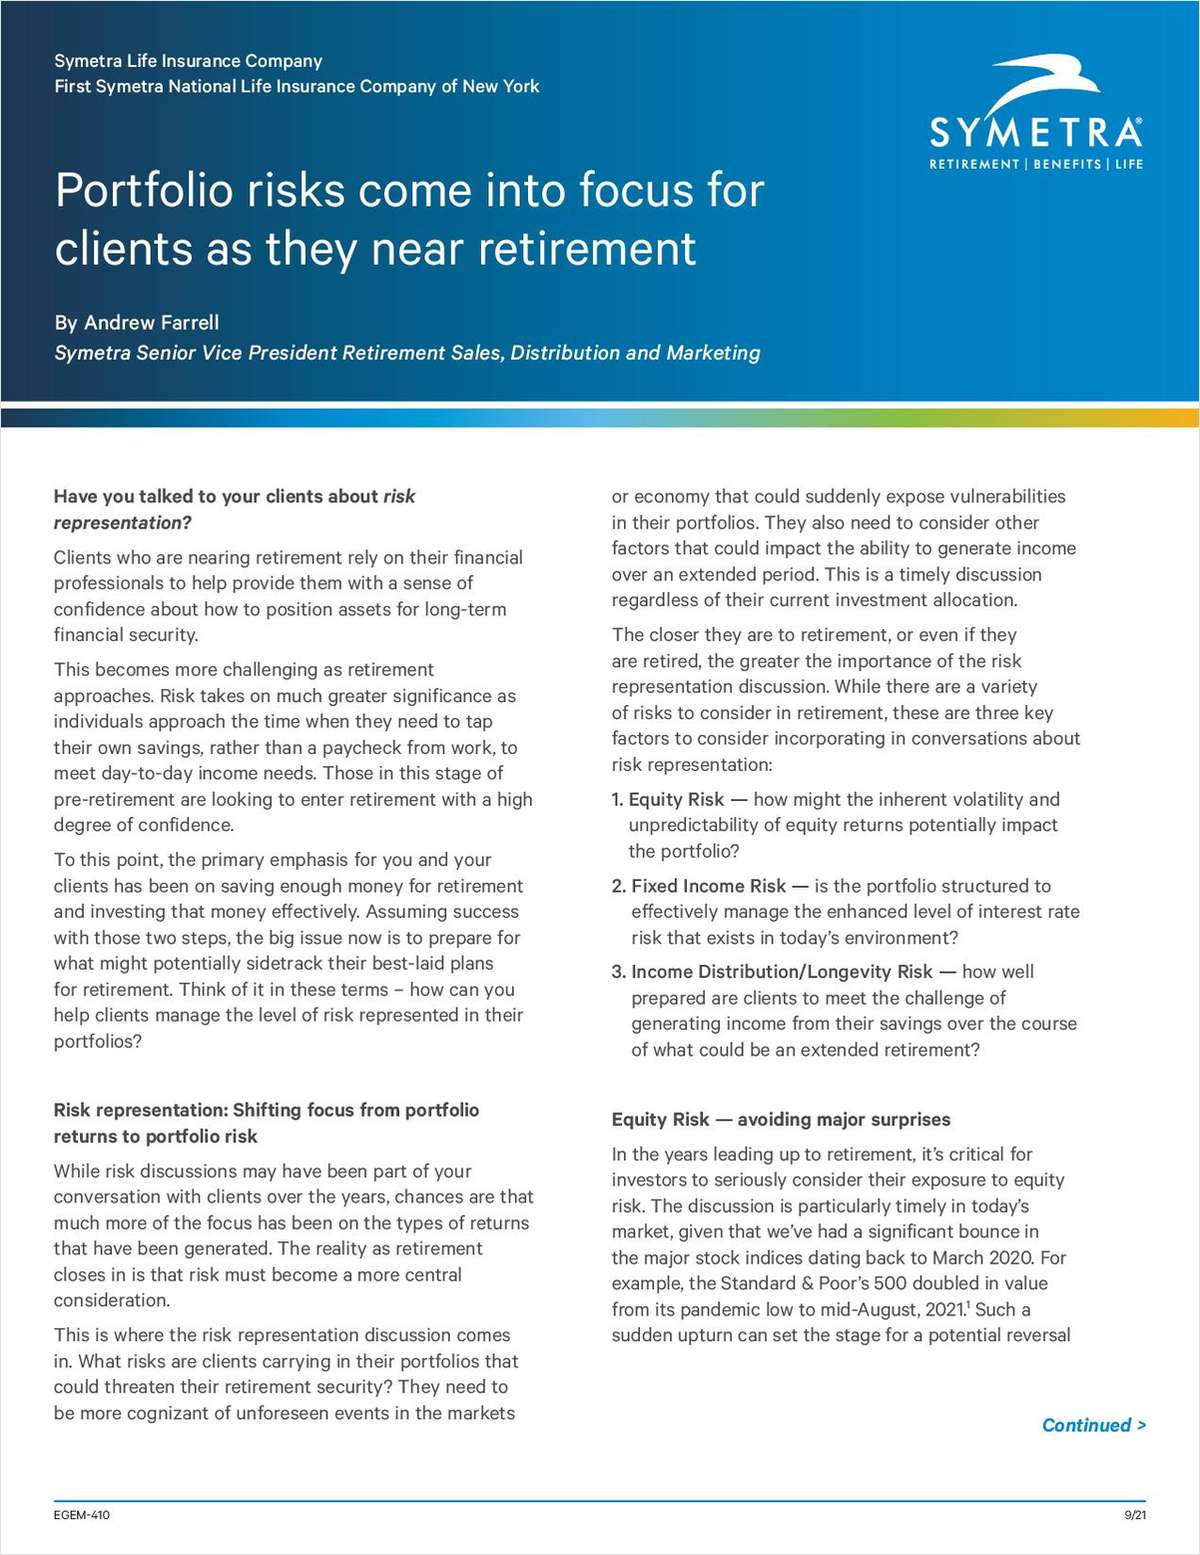 Portfolio Risks Come Into Focus for Clients as They Near Retirement